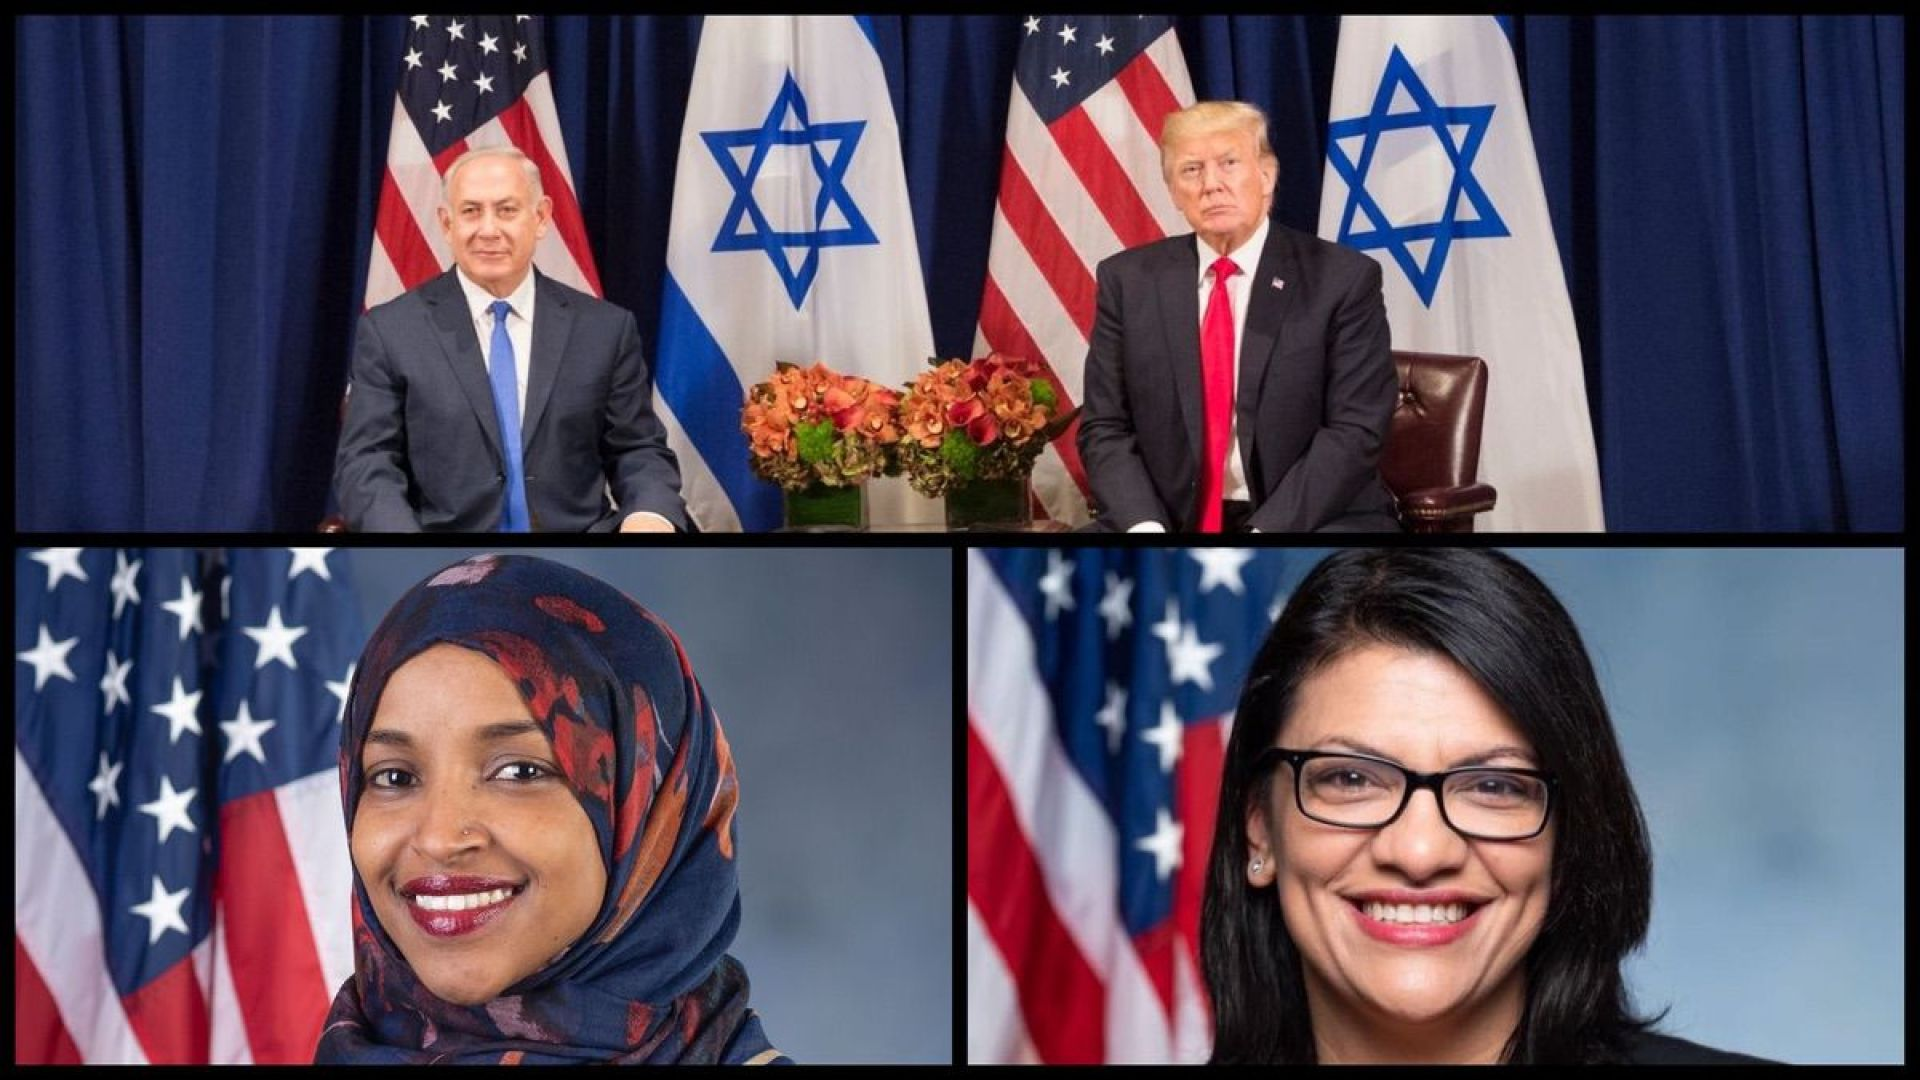 Top: President Donald J. Trump and Prime Minister Benjamin Netanyahu of Israel at the United Nations General Assembly (Official White House Photo by Shealah Craighead). Bottom: Representatives Ilhan Omar (D-MN) and Rashida Tlaib (D-MI) (Official Photos)